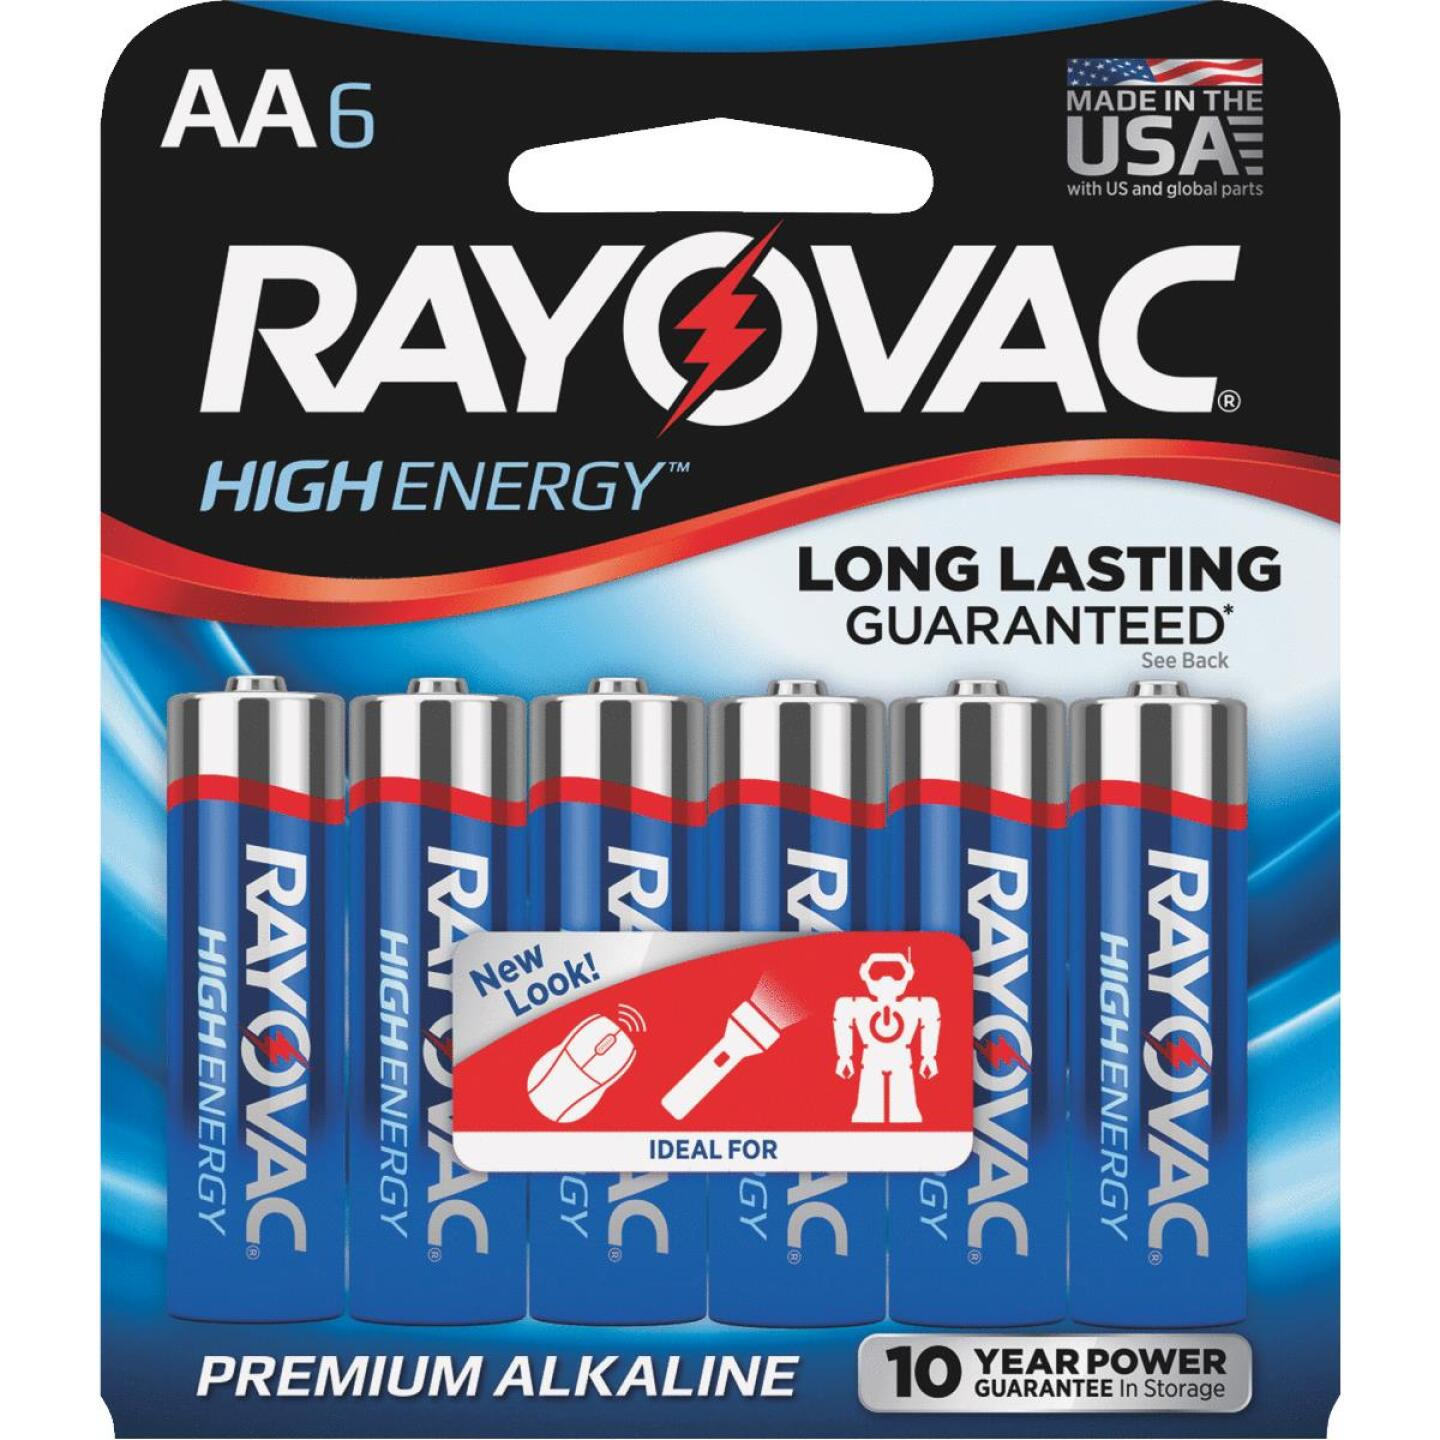 Rayovac High Energy AA Alkaline Battery (6-Pack) Image 1